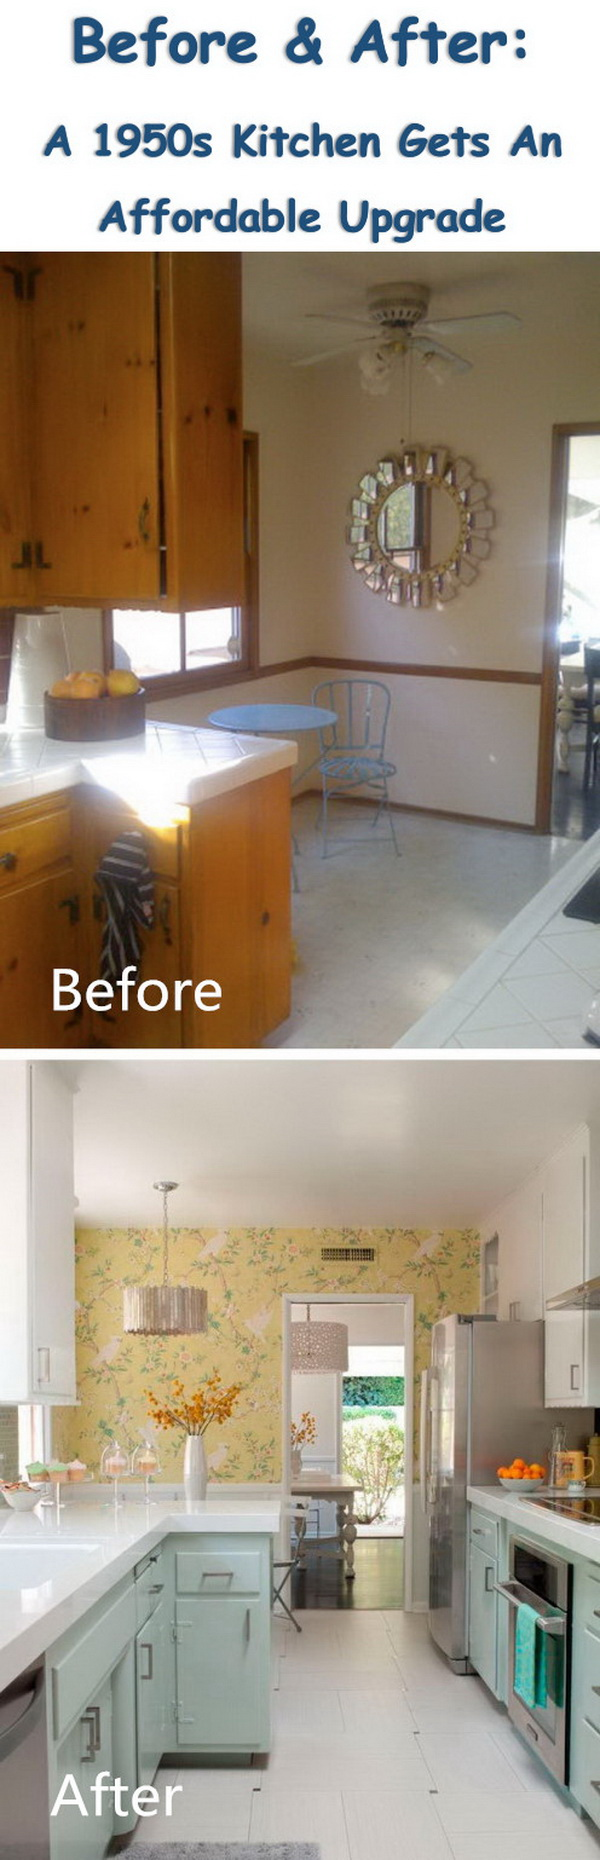 Before & After: A 1950s Kitchen Gets An Affordable Upgrade.